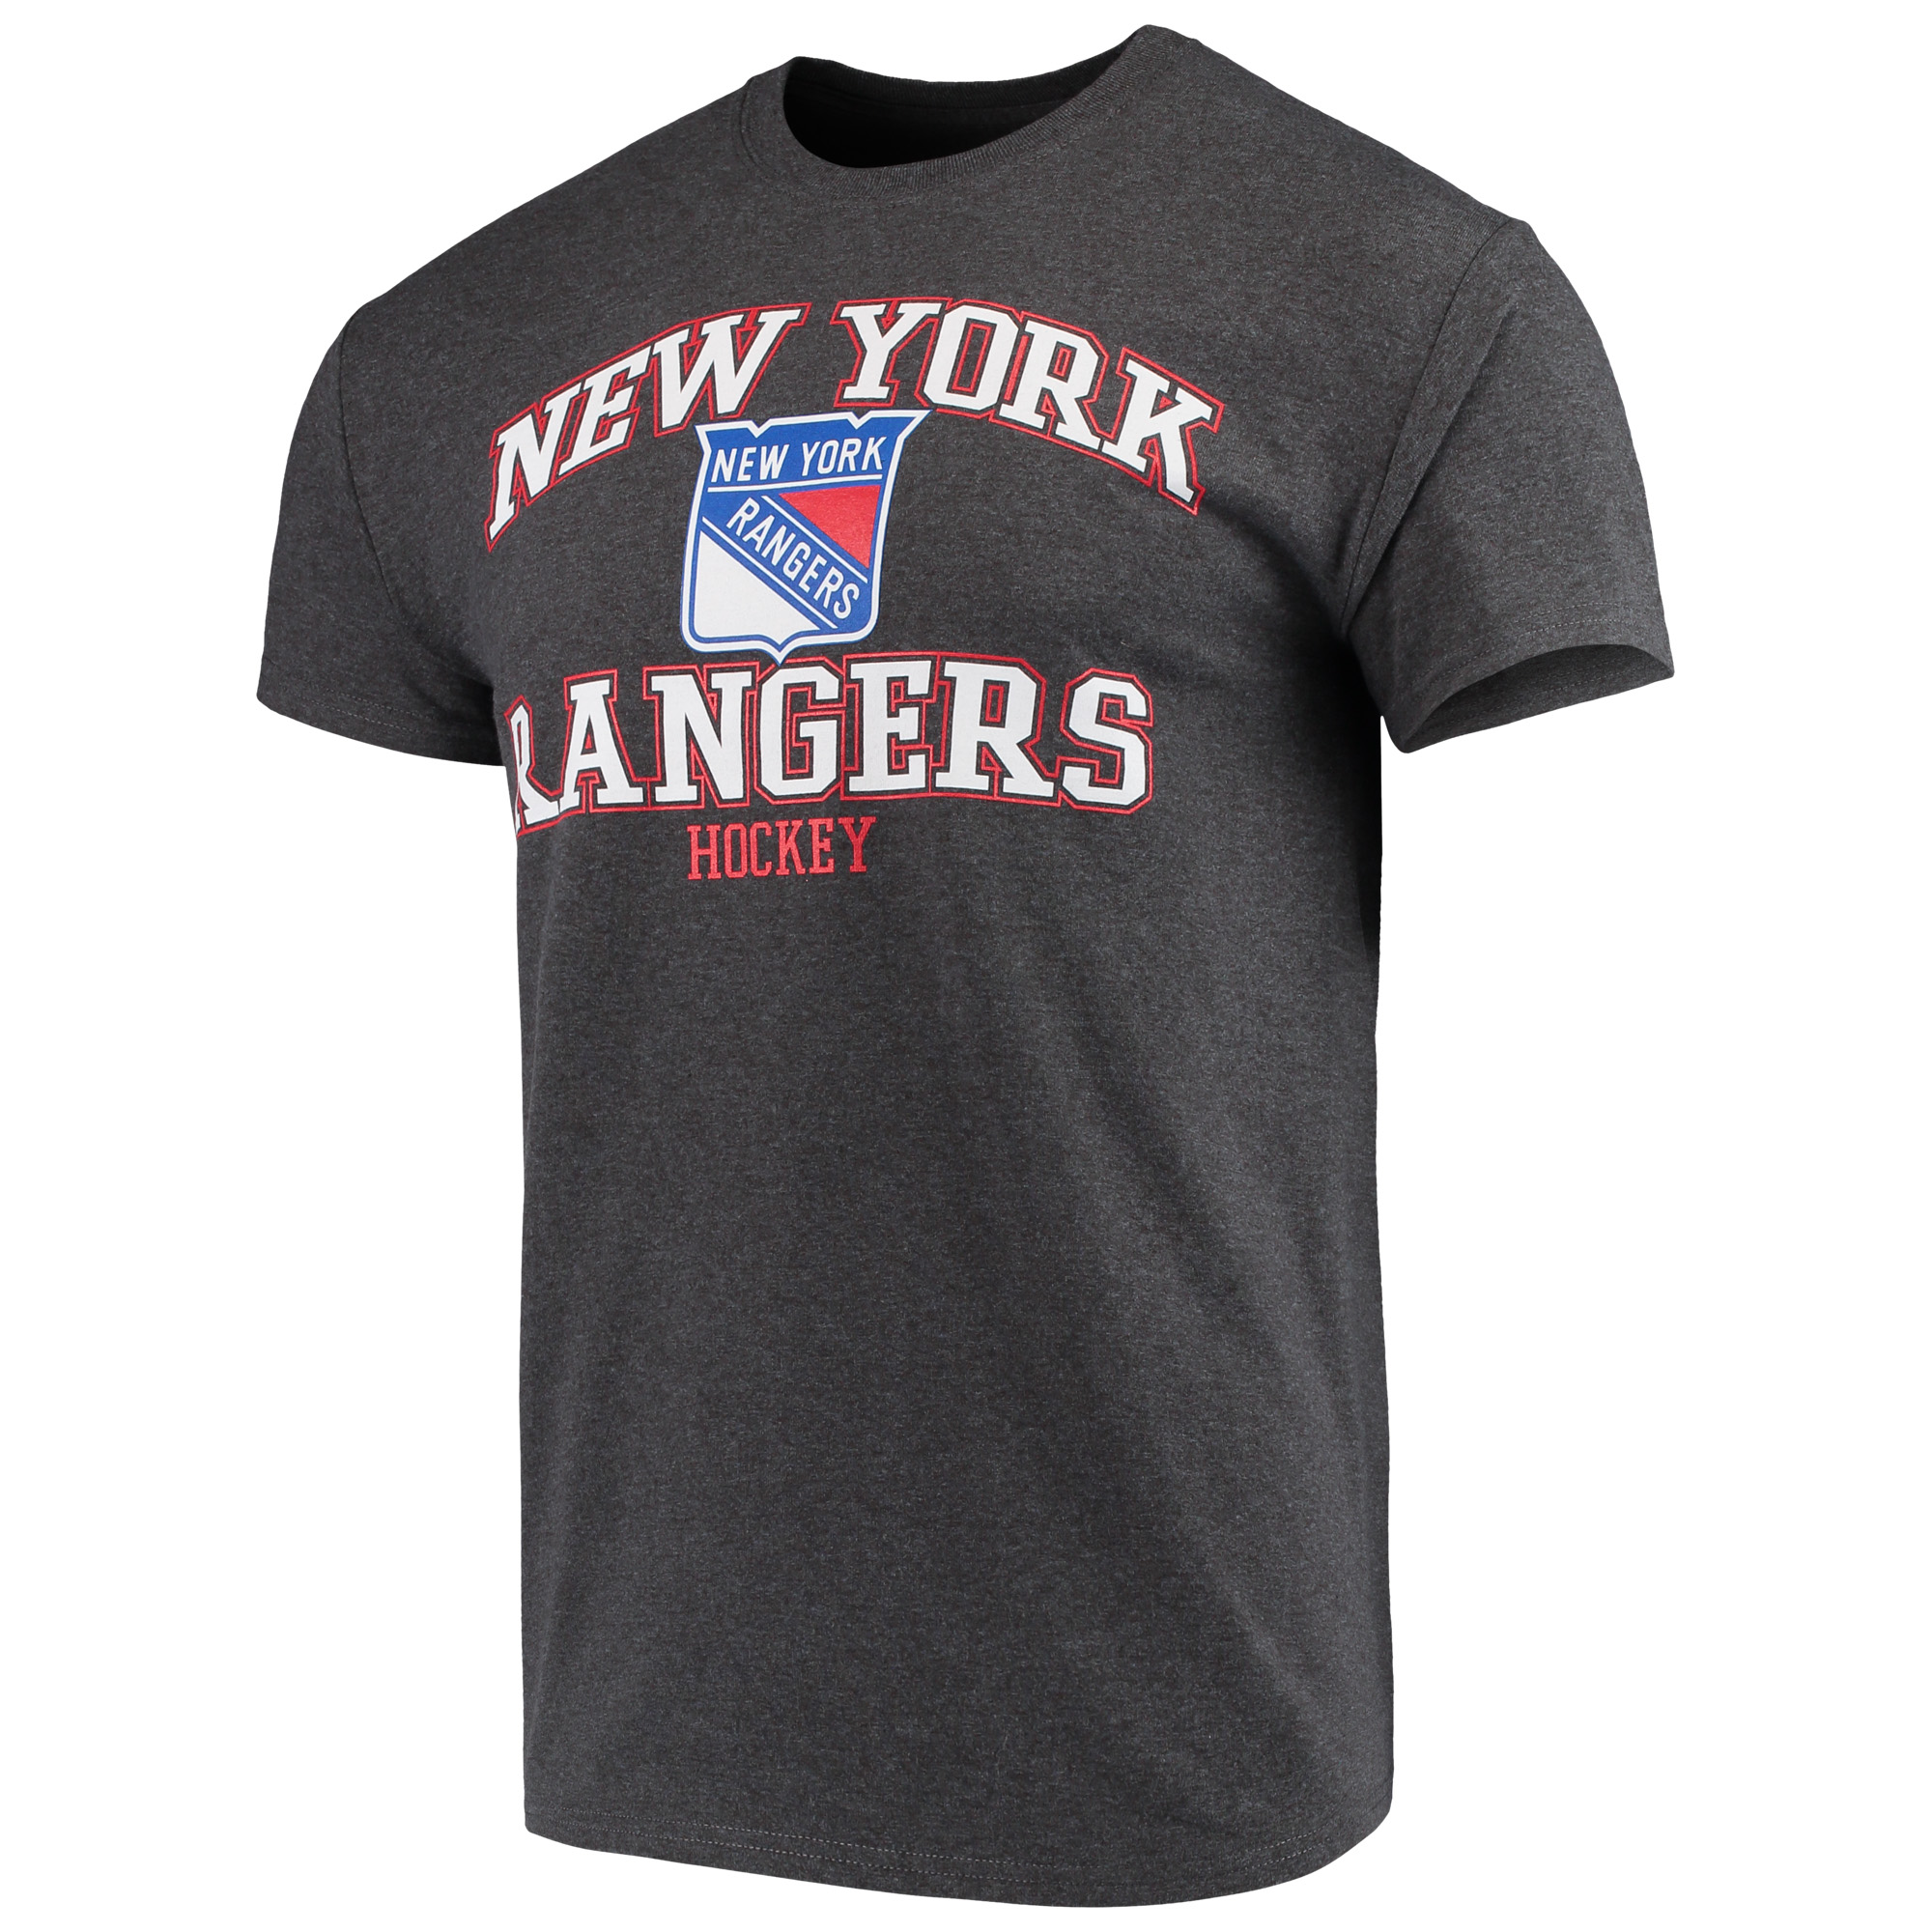 Men's Majestic Heathered Charcoal New York Rangers Greatness Short Sleeve T-Shirt